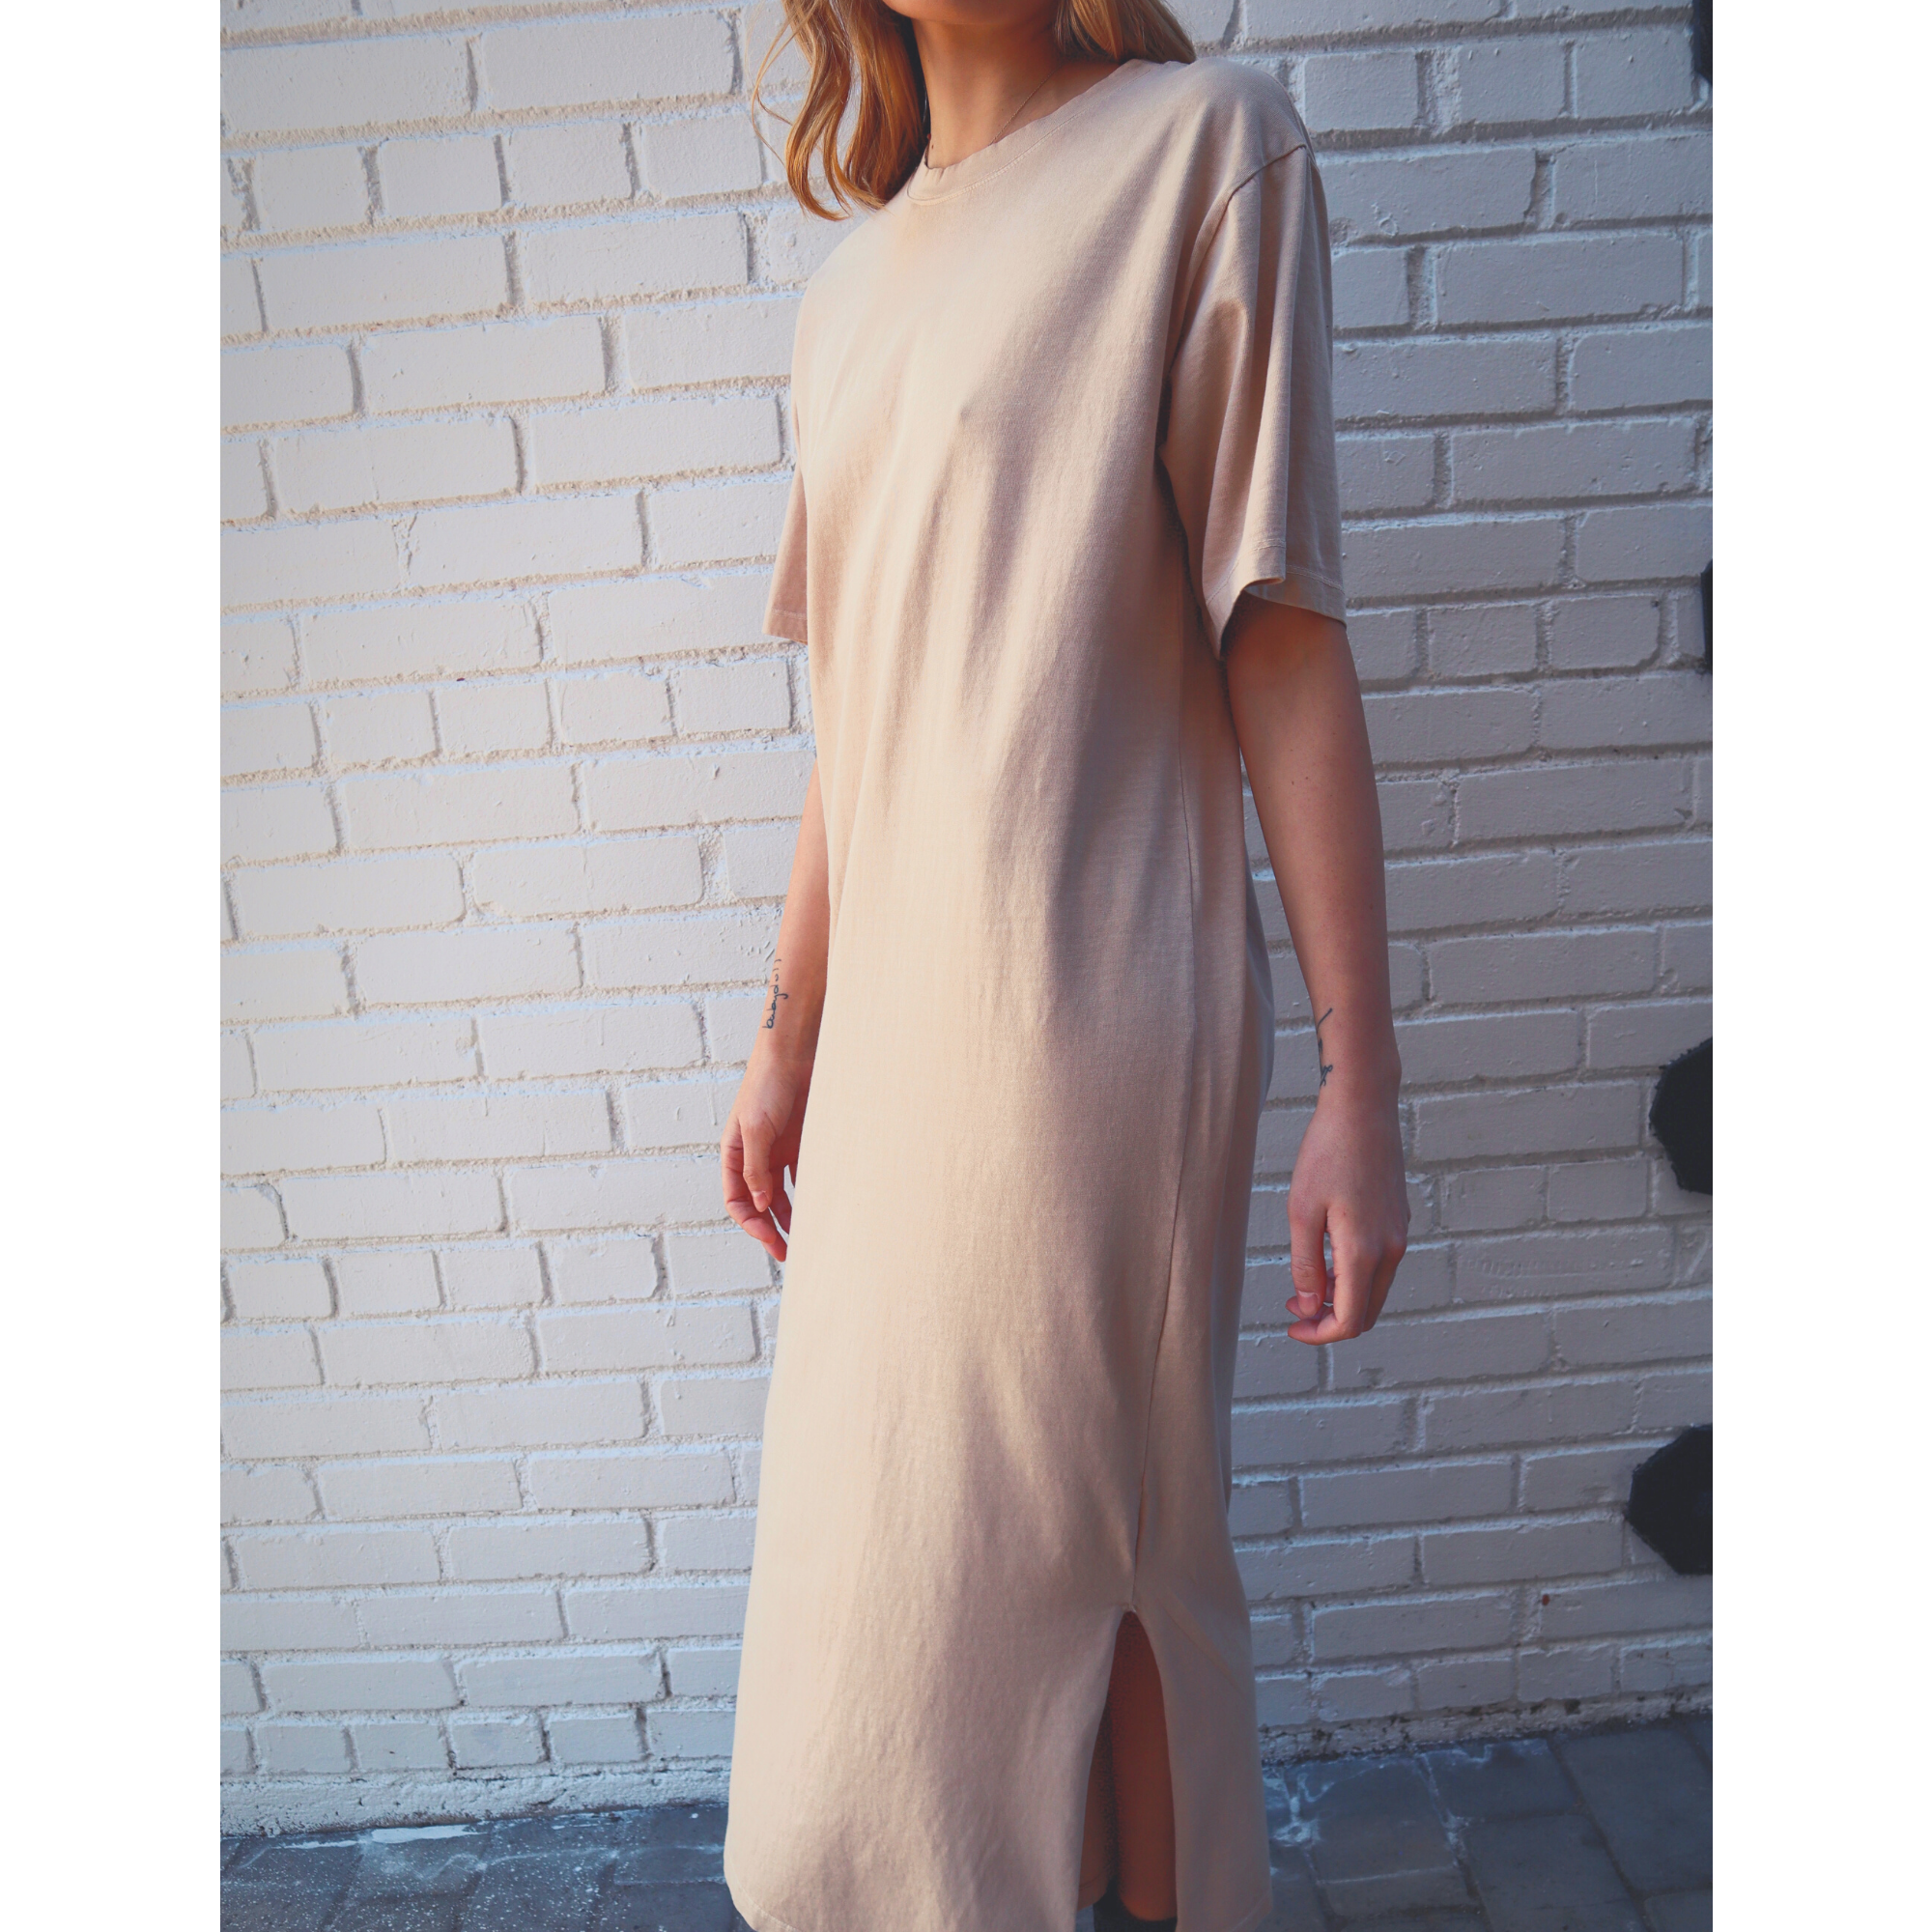 The Relax Dress